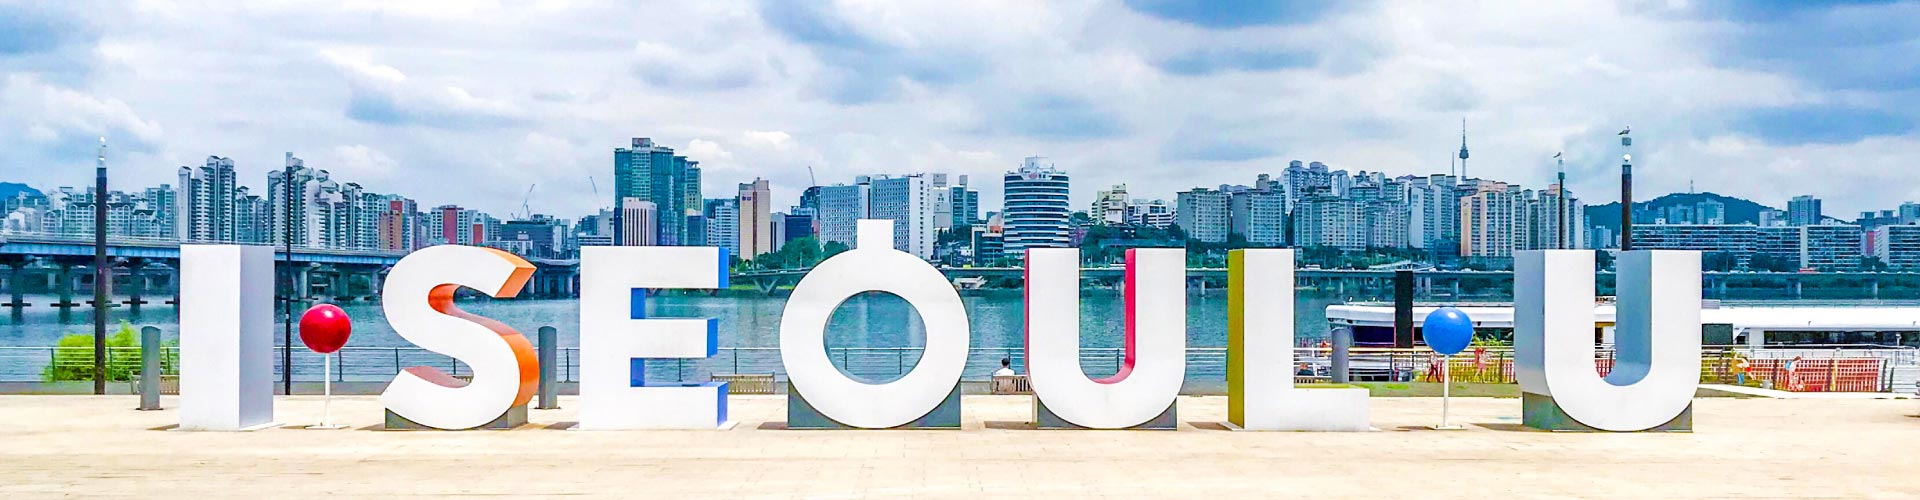 Seoul Instagrammable Tour